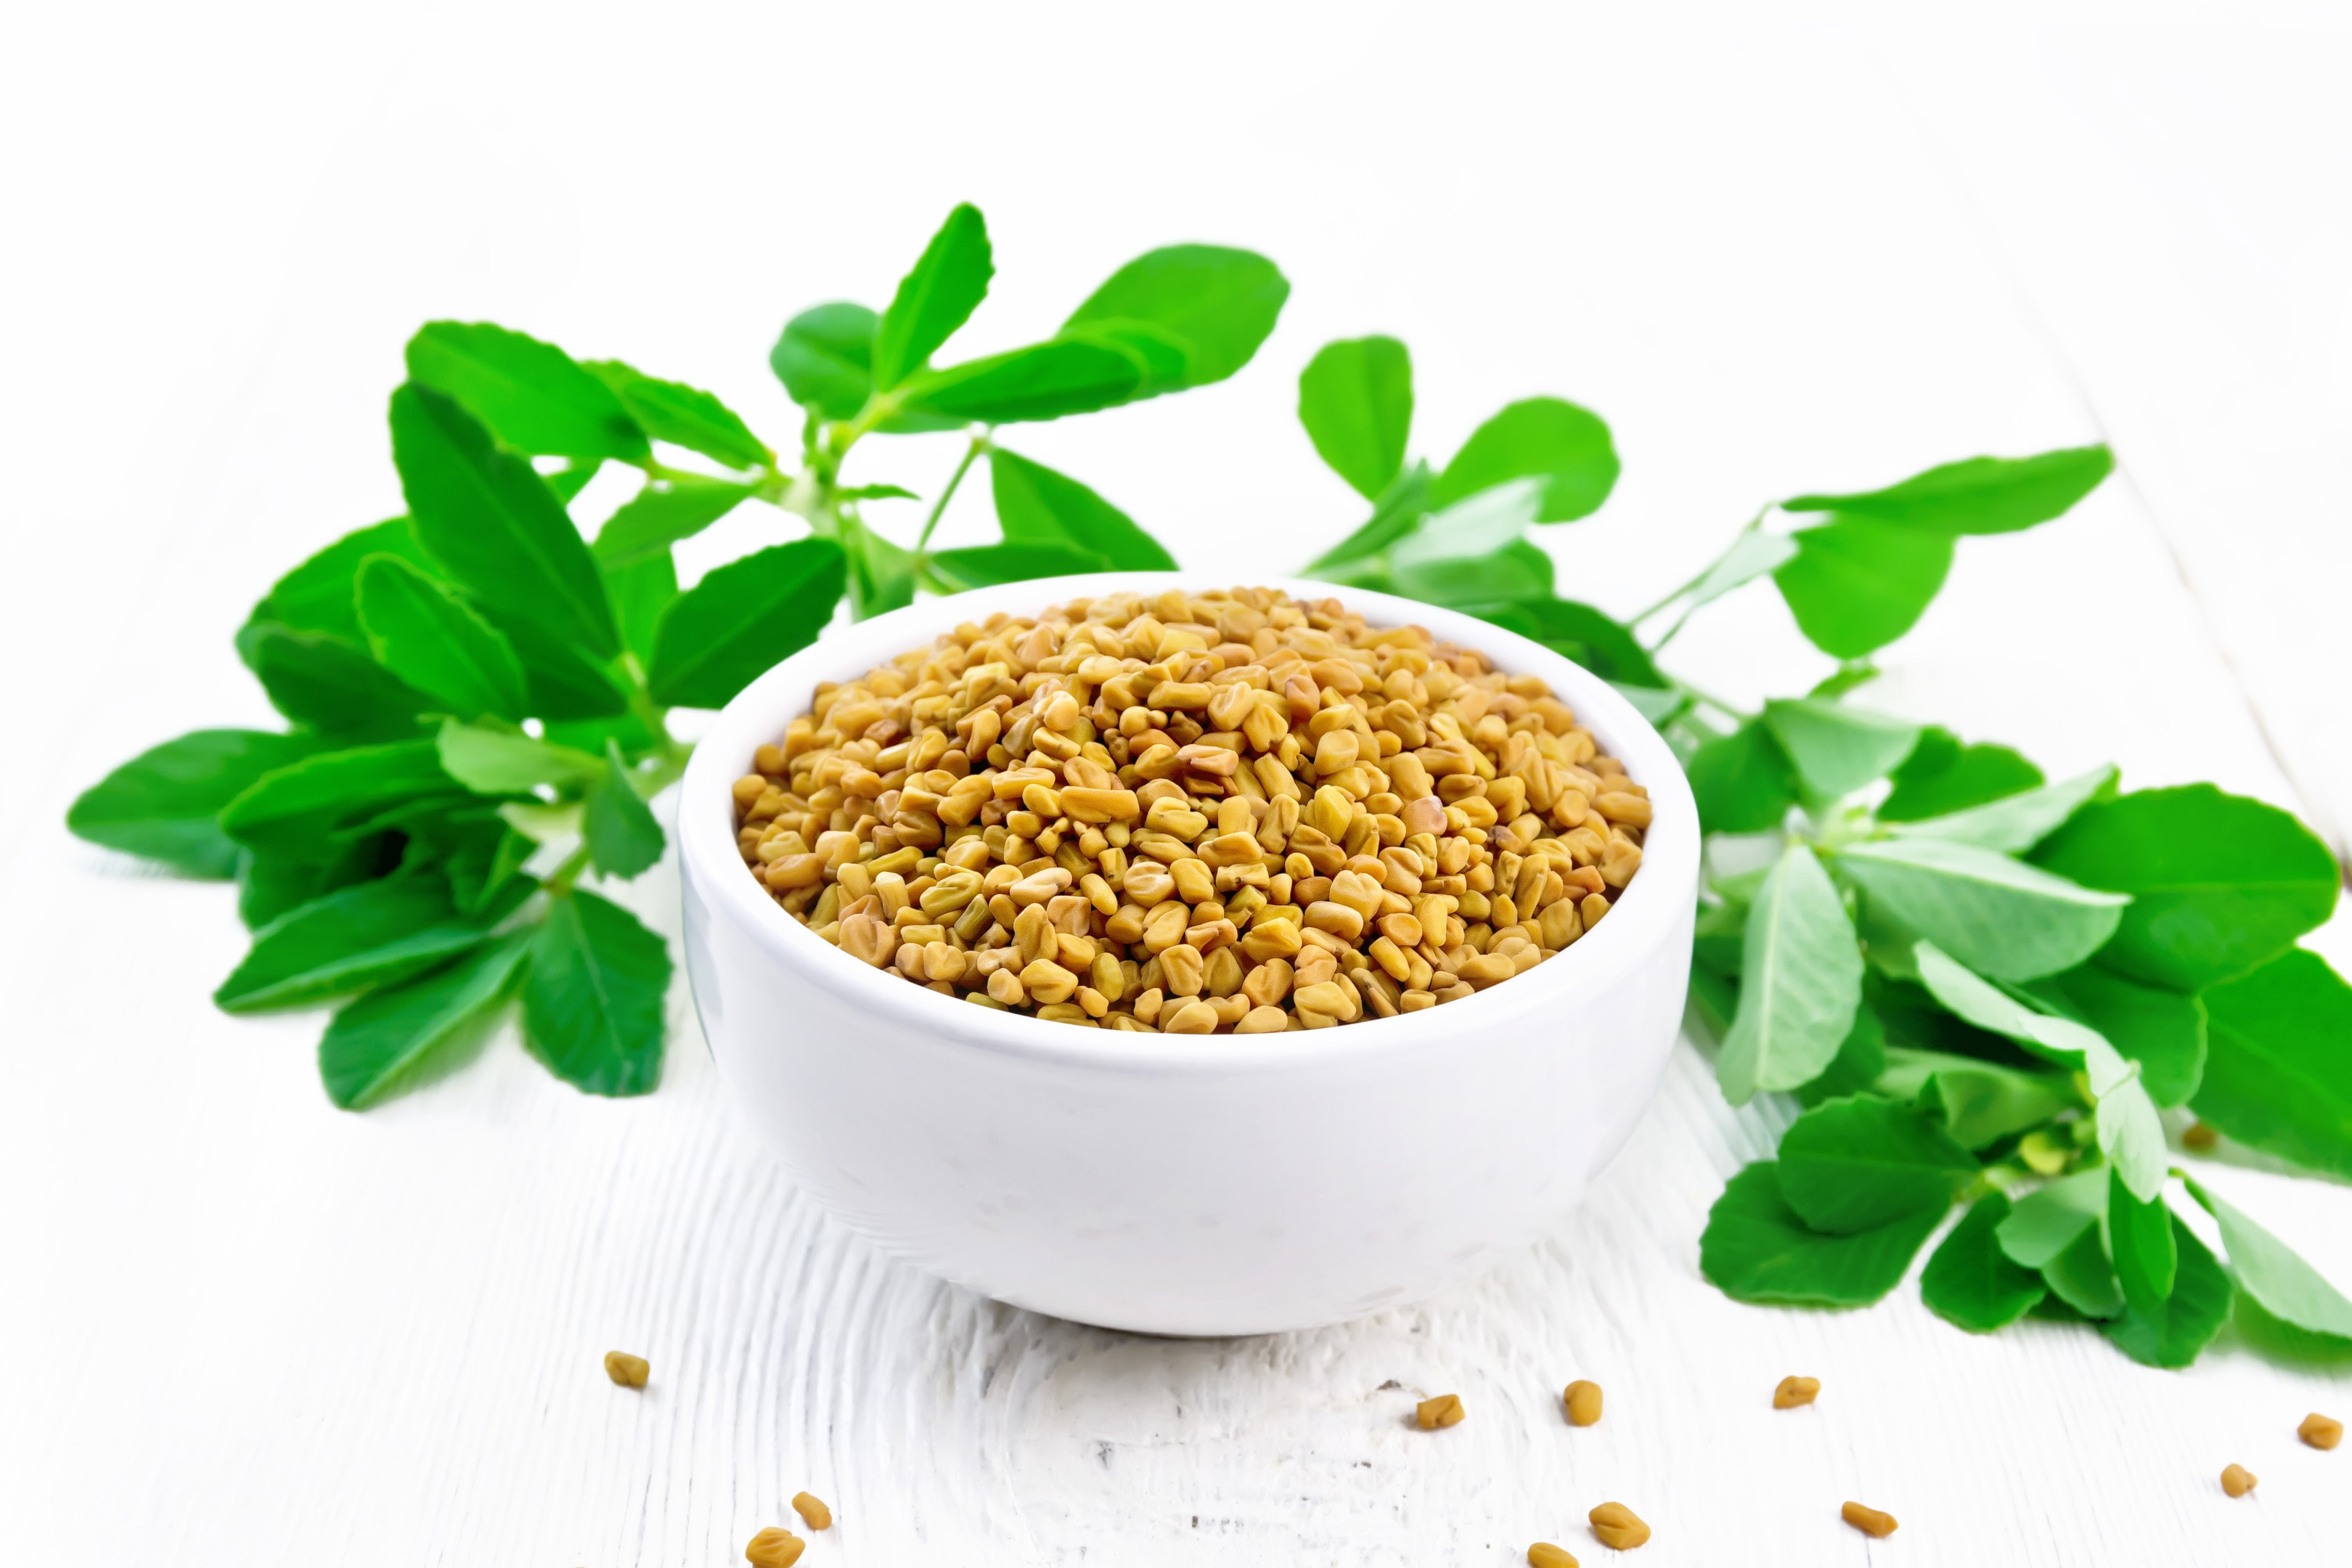 Fenugreek seeds with in a bowl with green leaves